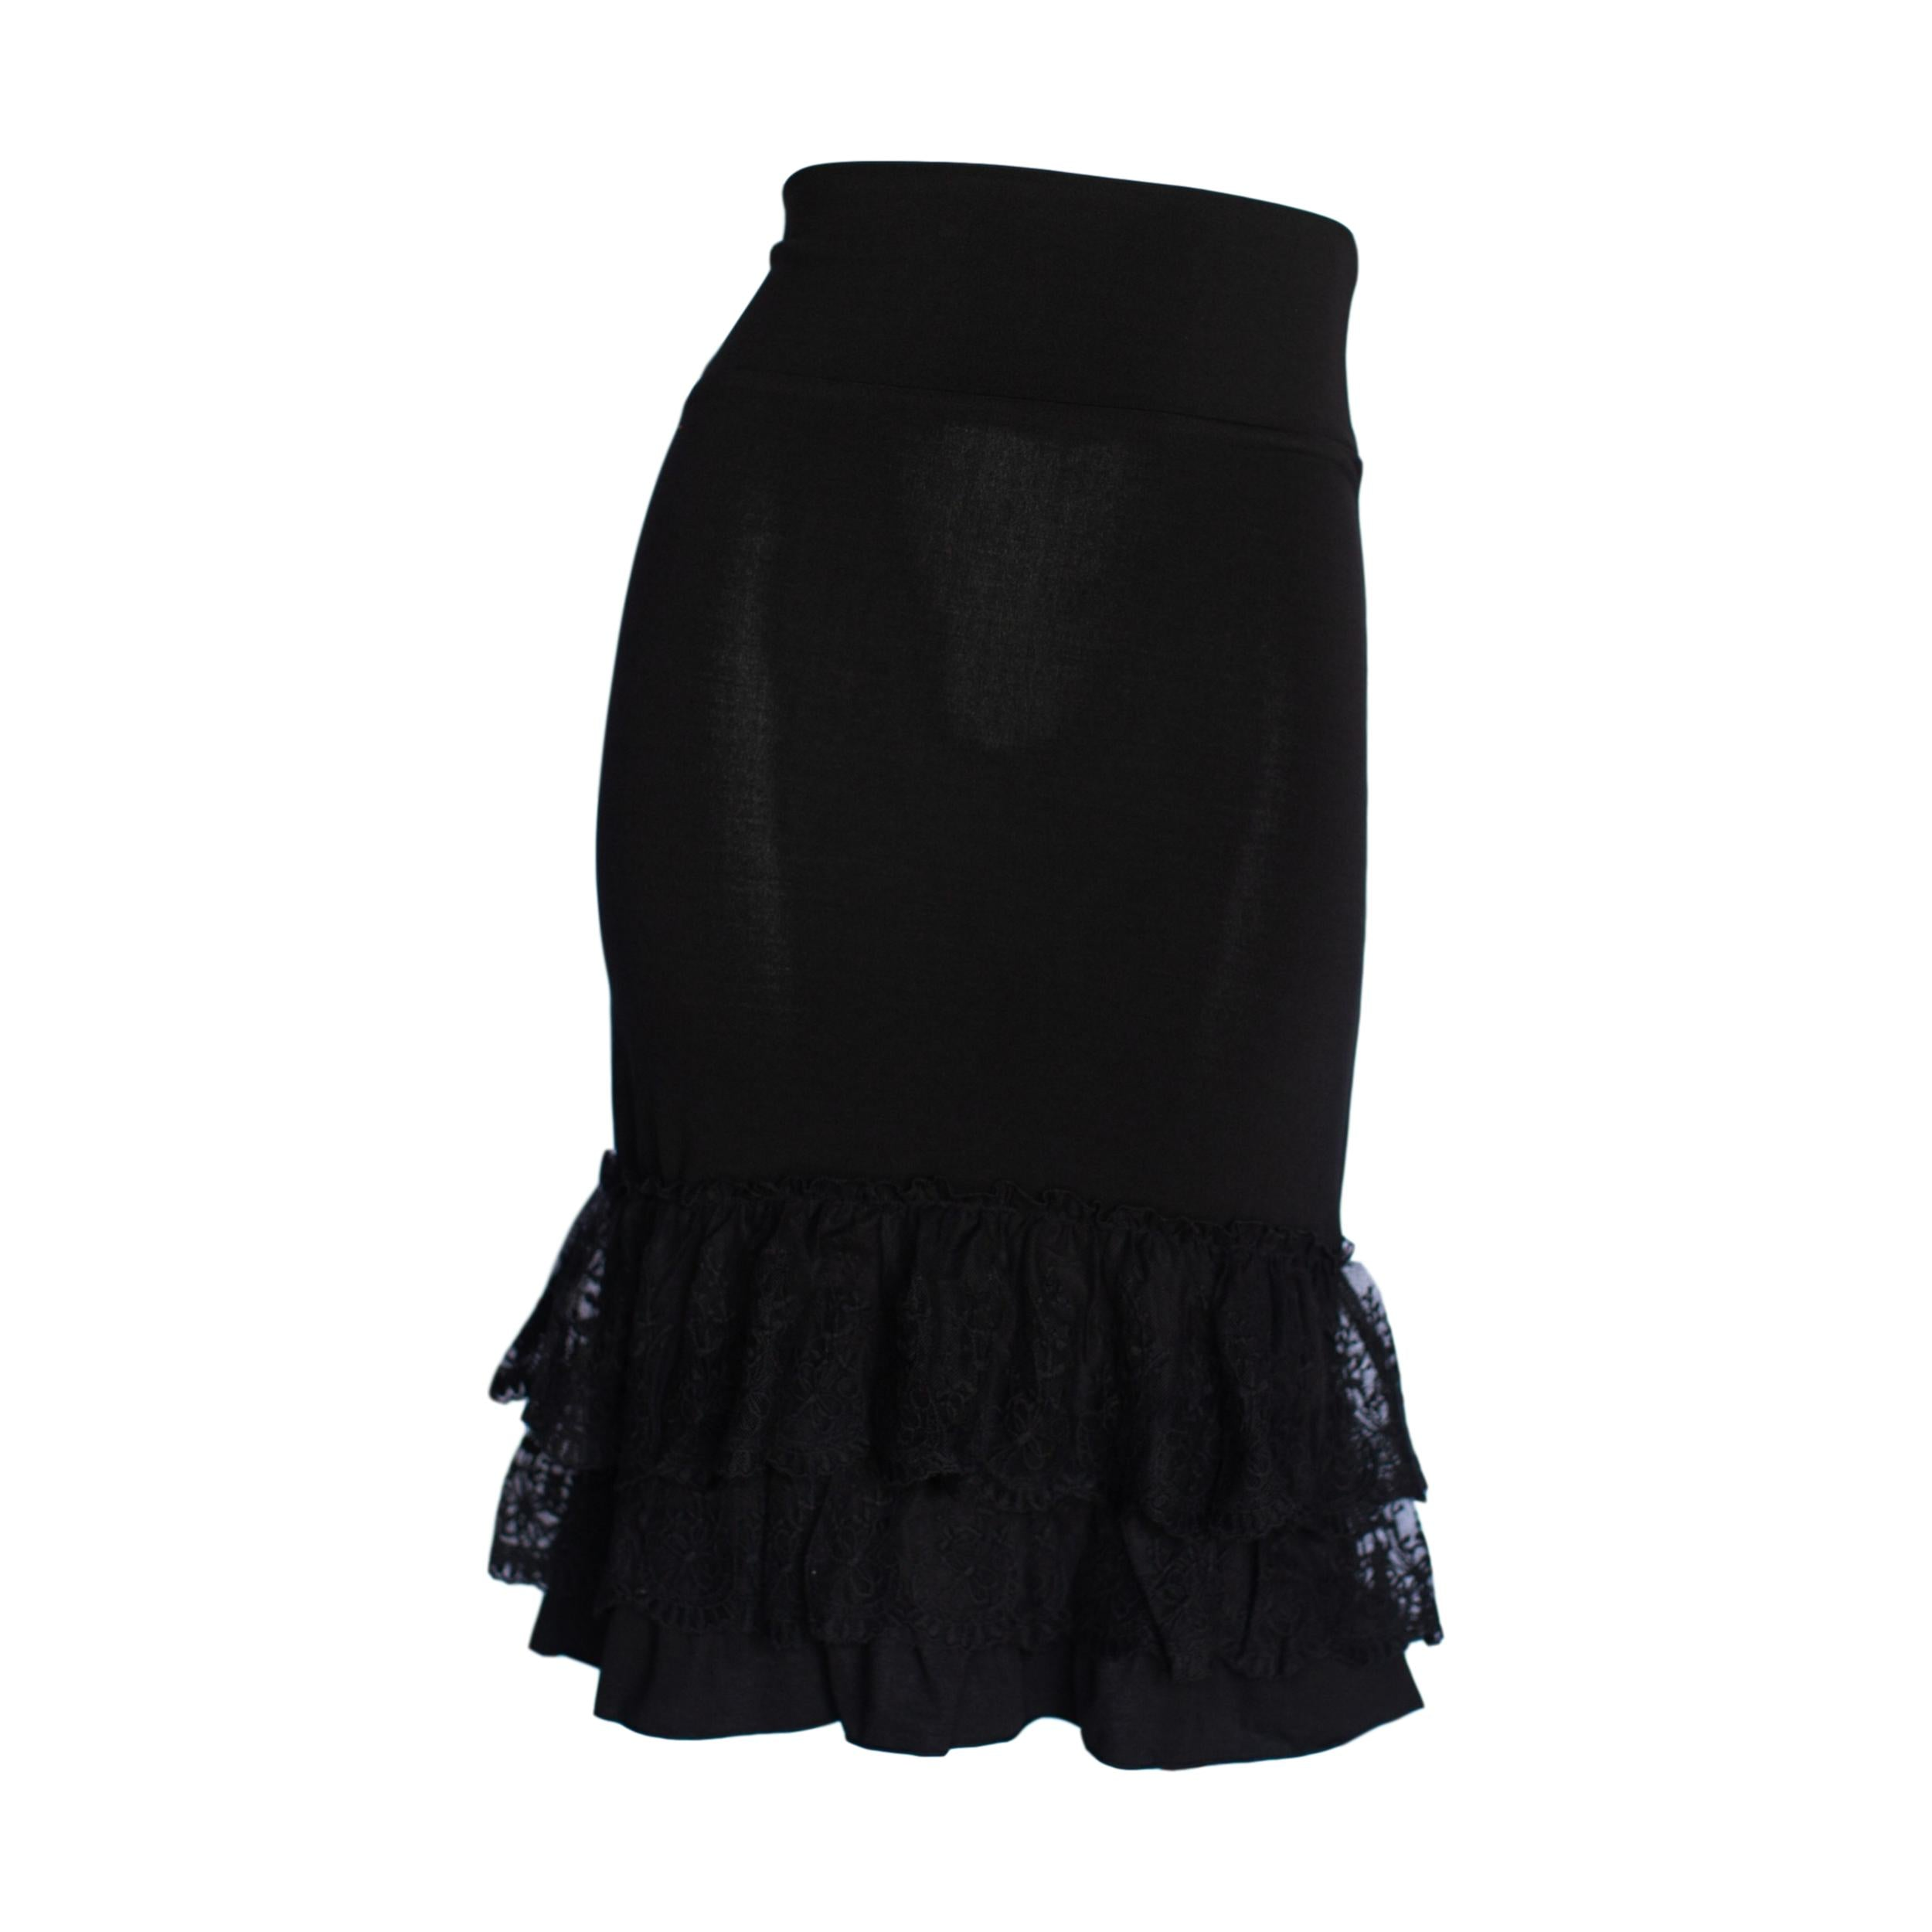 Classy vs Sassy Half Slip | black, skirt extenders, Peekaboo Chic | Modest Layering Apparel for women